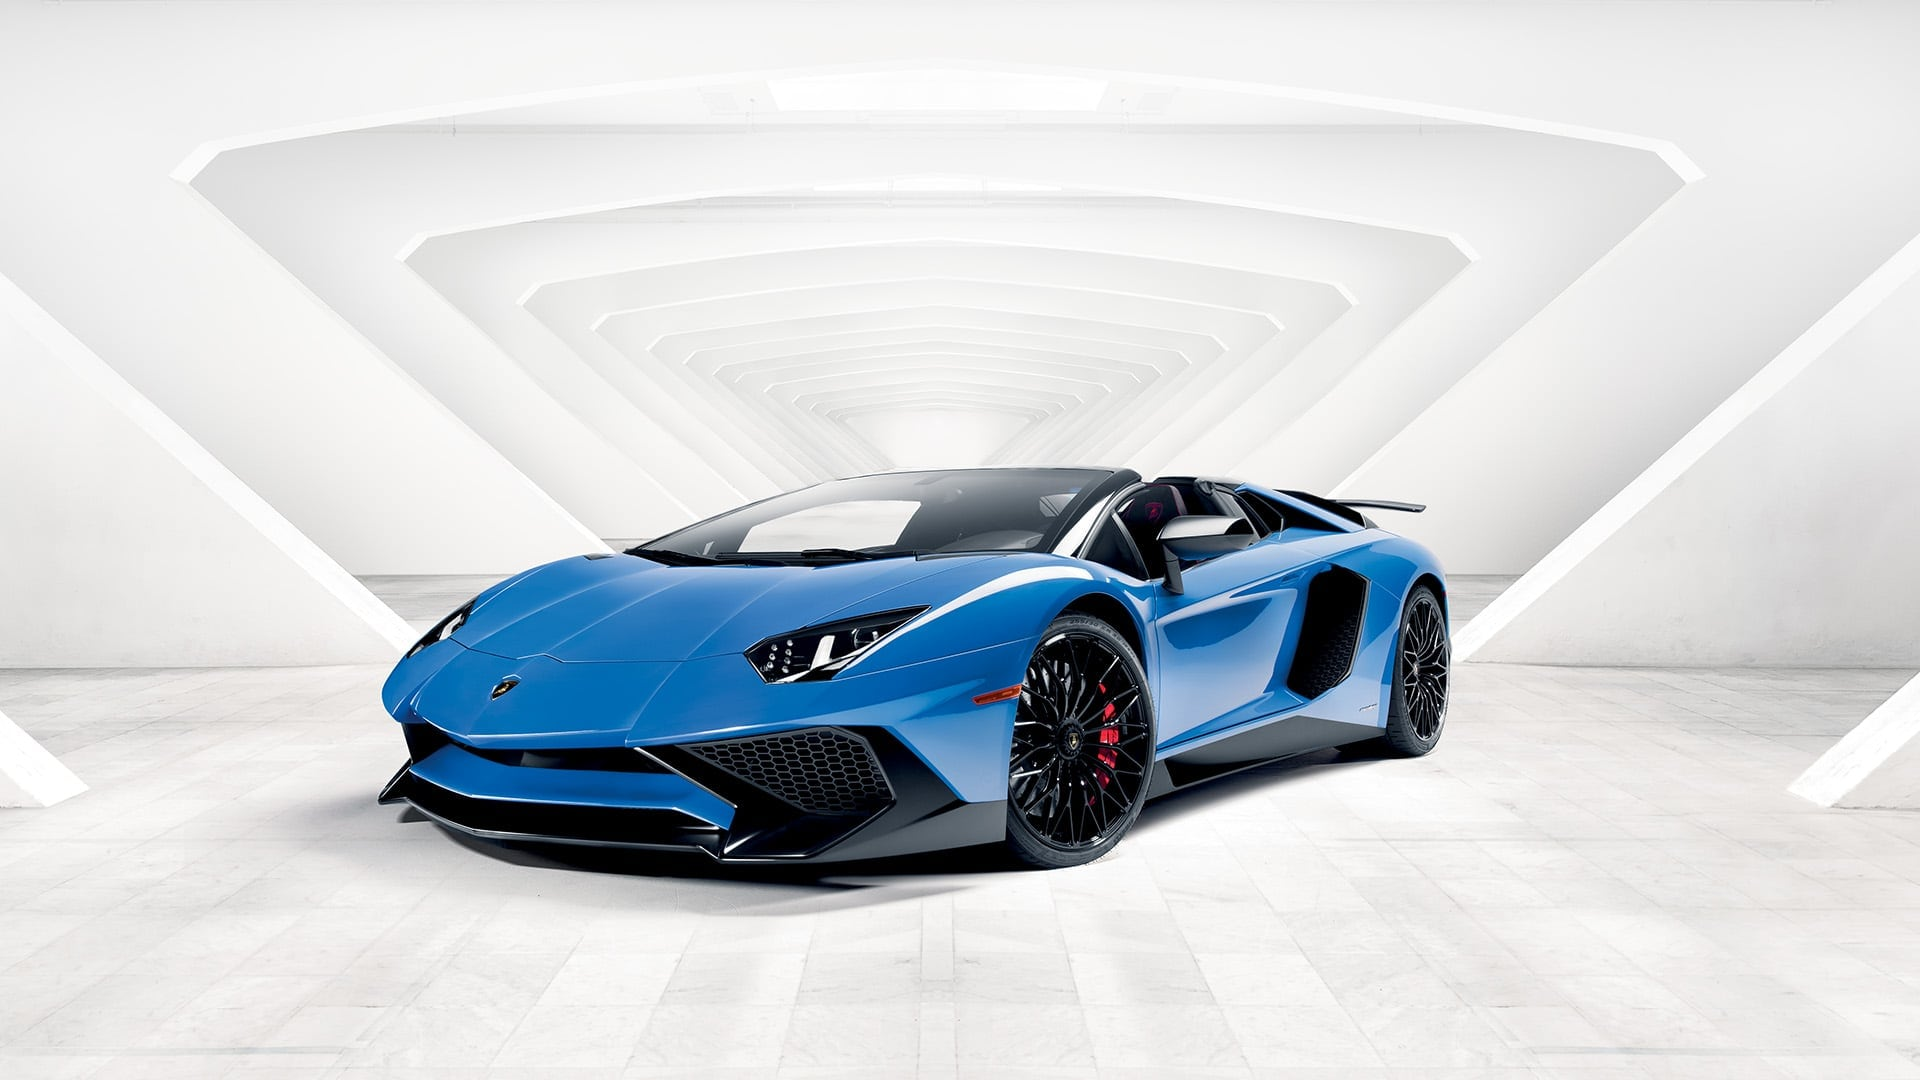 Image result for Lamborghini Aventador SV Roadster